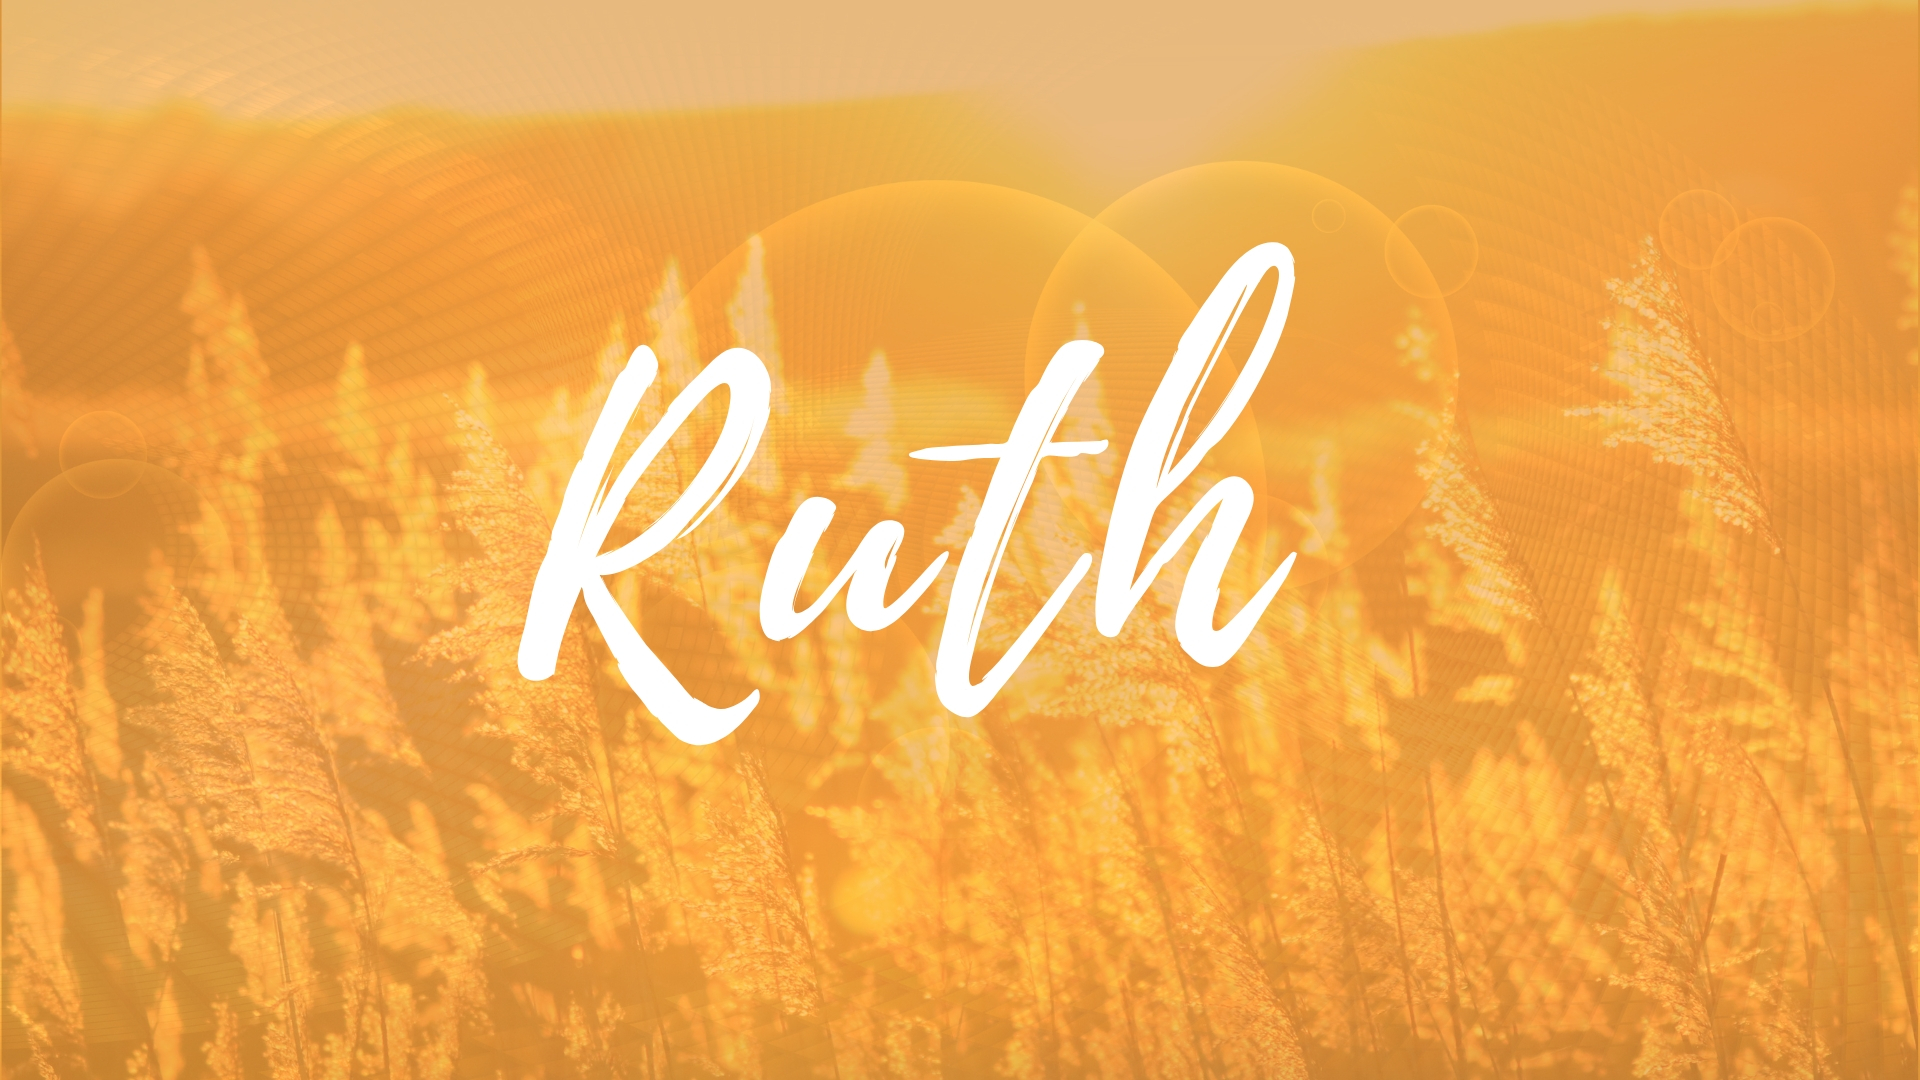 Ruth - Series Image.jpg